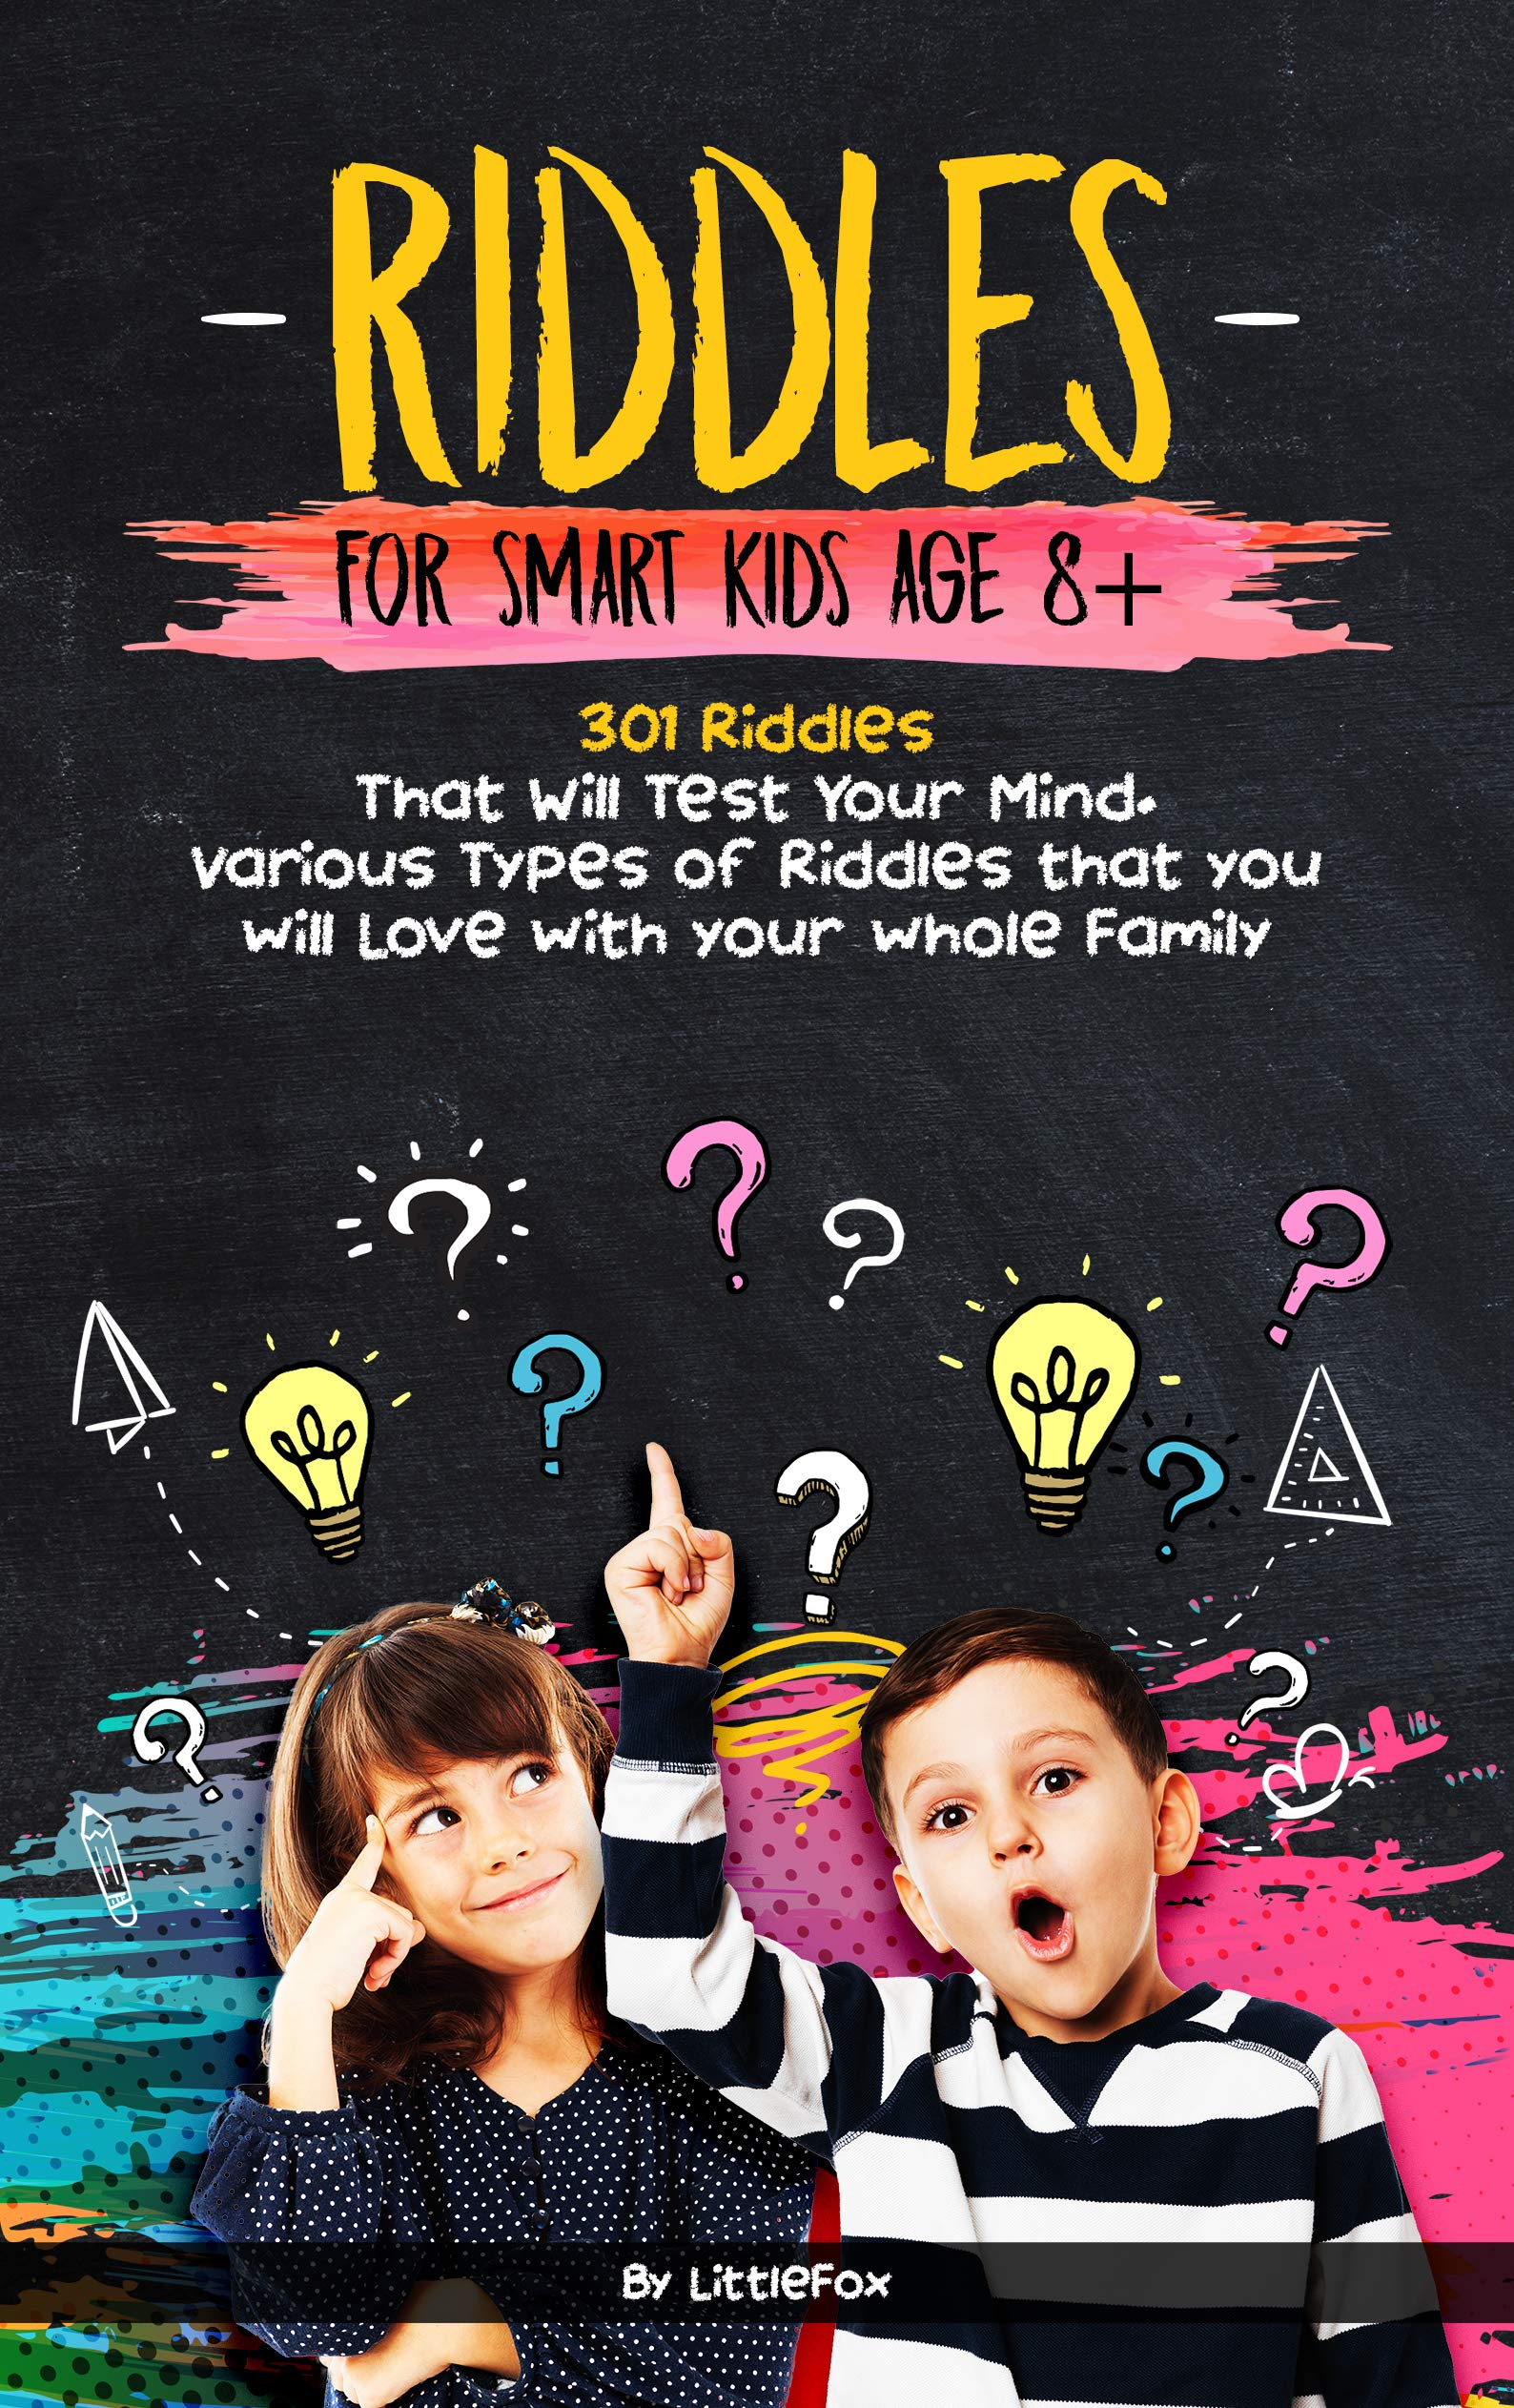 RIDDLES FOR SMART KIDS AGE 8+: 301 Riddles That Will Test Your Mind. Various Types of Riddles that you will Love with your whole Family